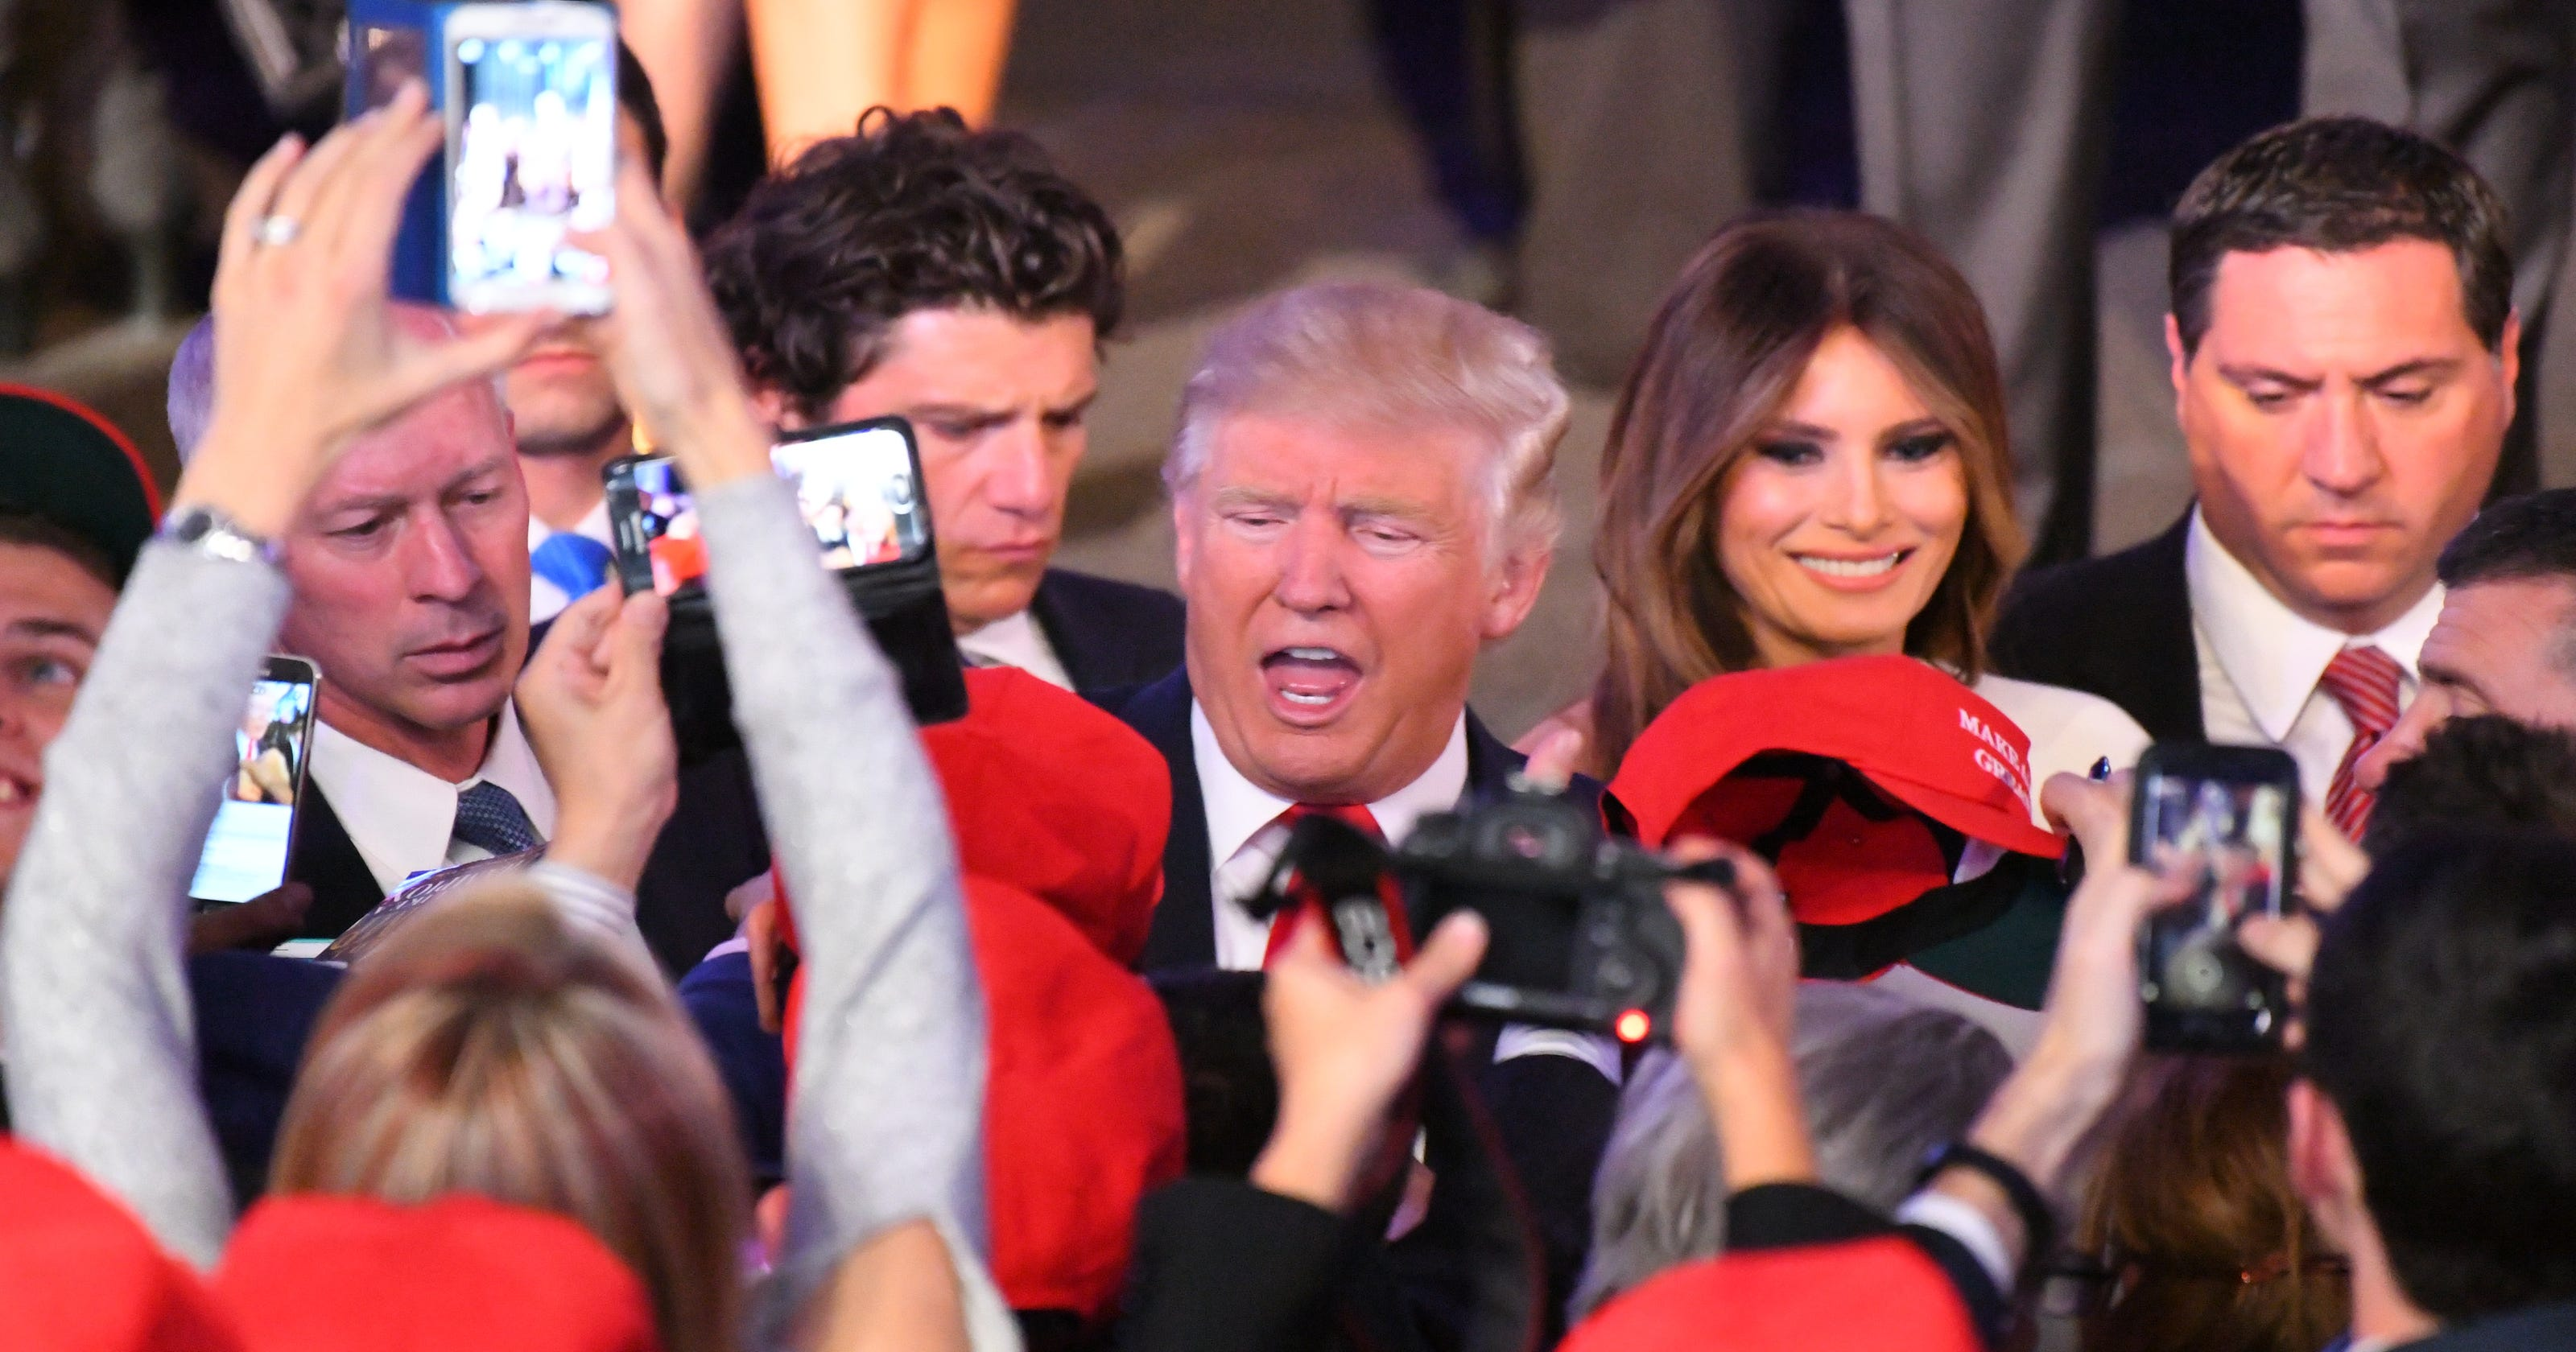 Donald Trump stuns the world, elected USA's 45th president